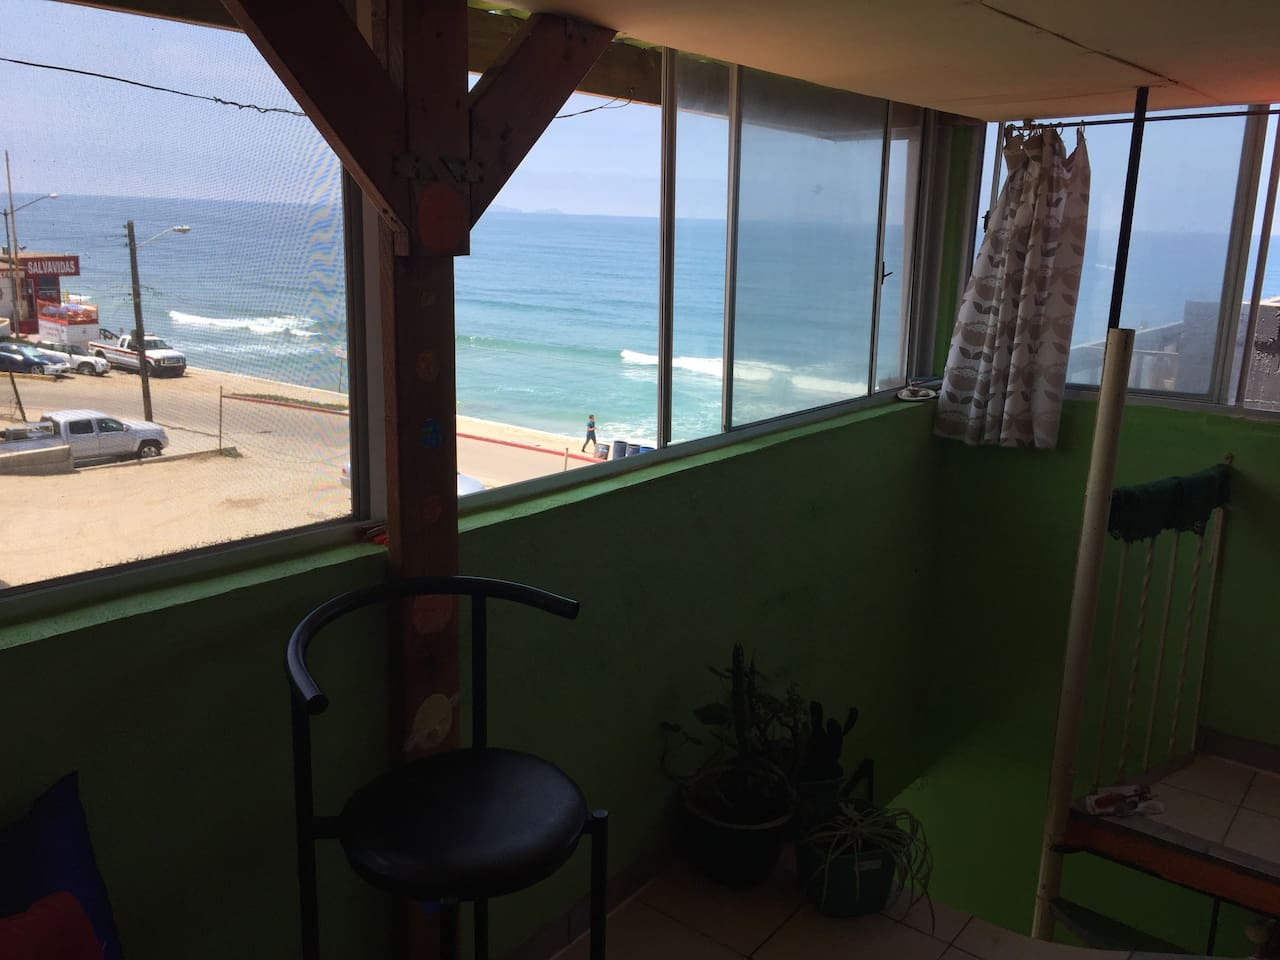 3rd floor green apt. Amazing views and fresh ocean breeze all day!